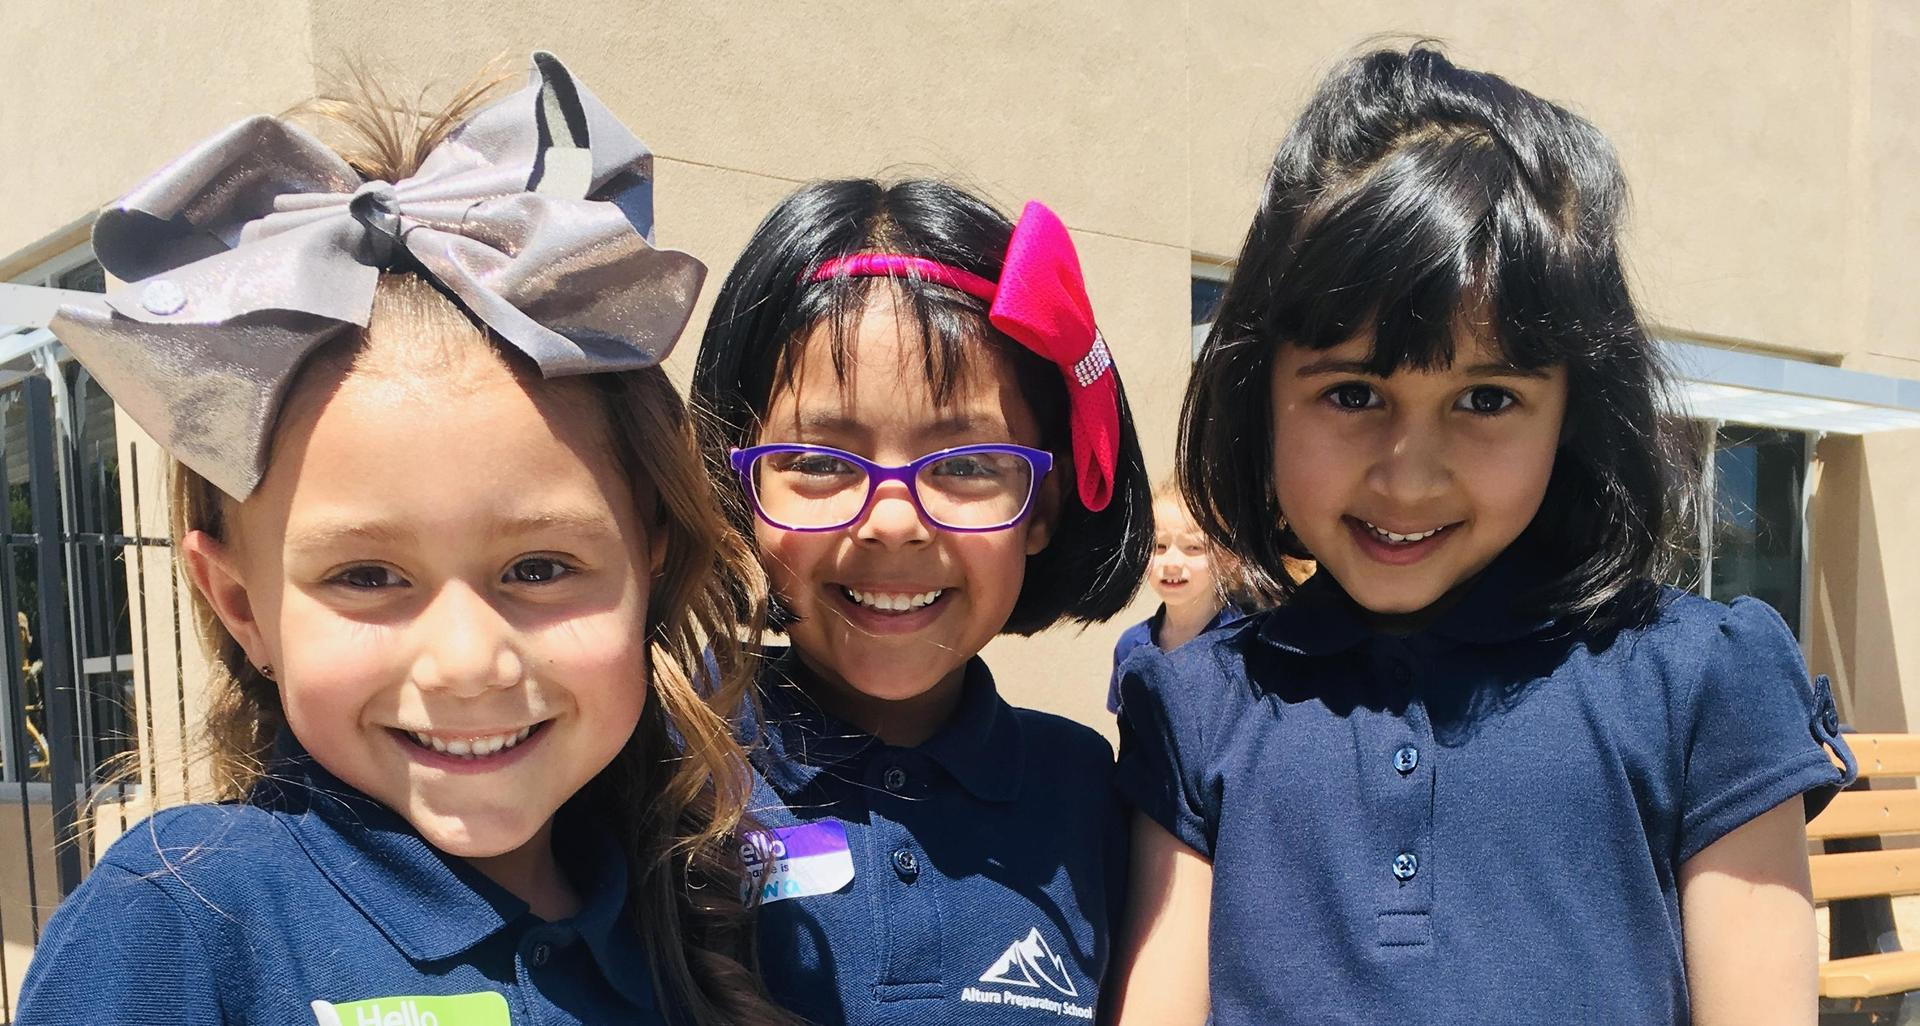 Students smile in their uniforms.